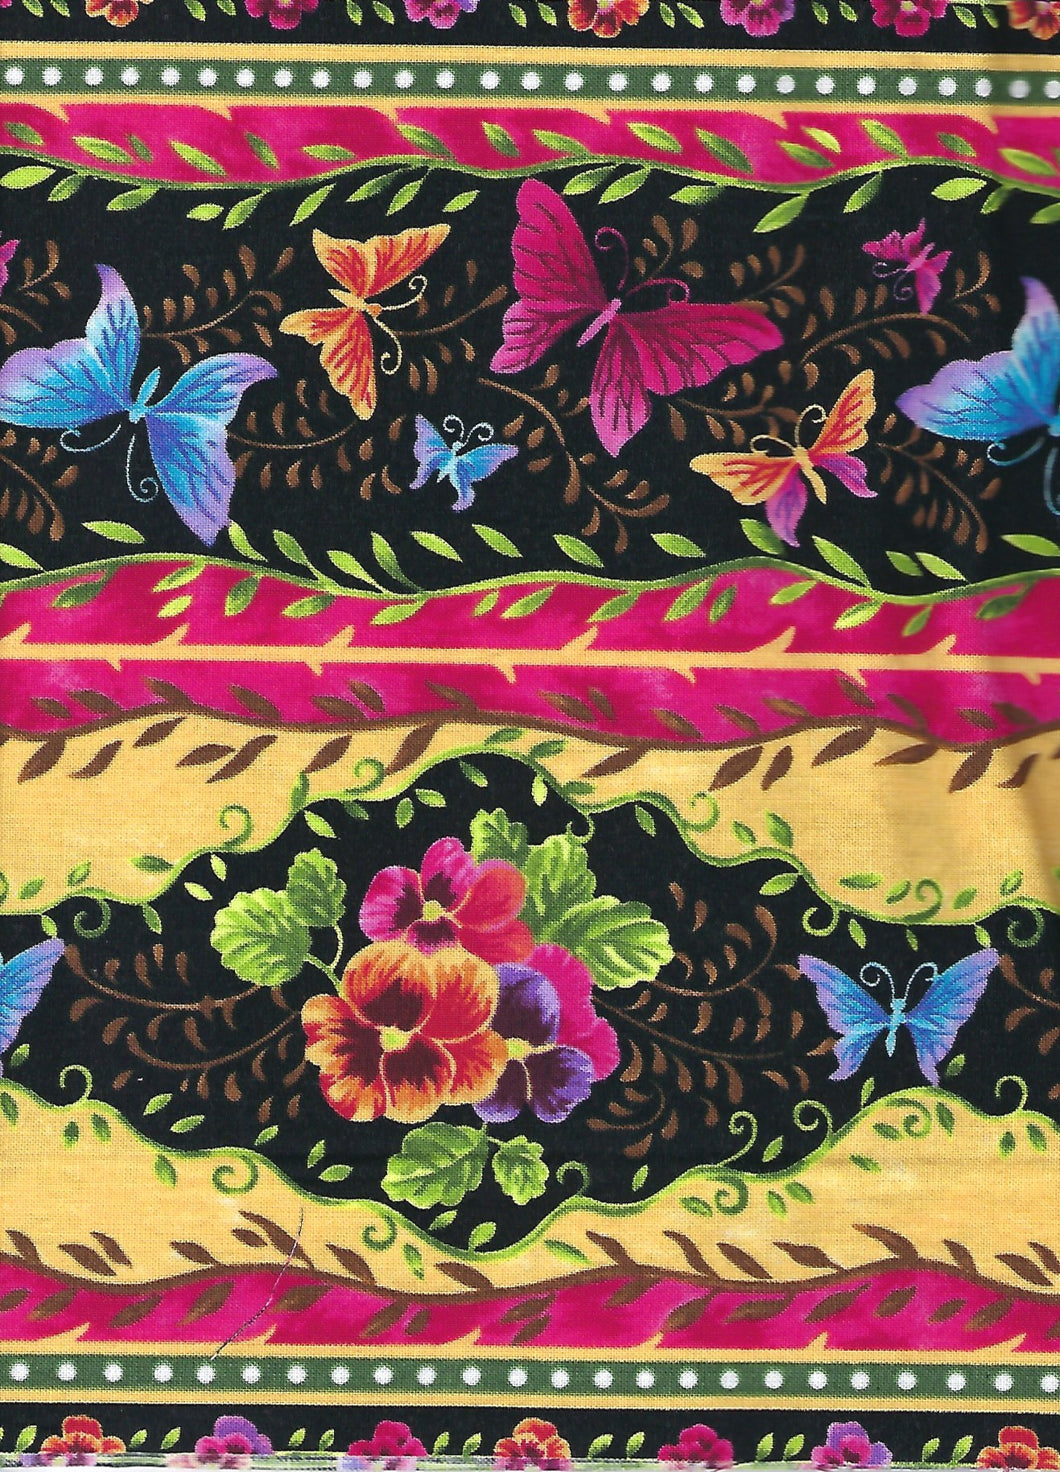 Fabric Kit Runner - Colorful Butterflies